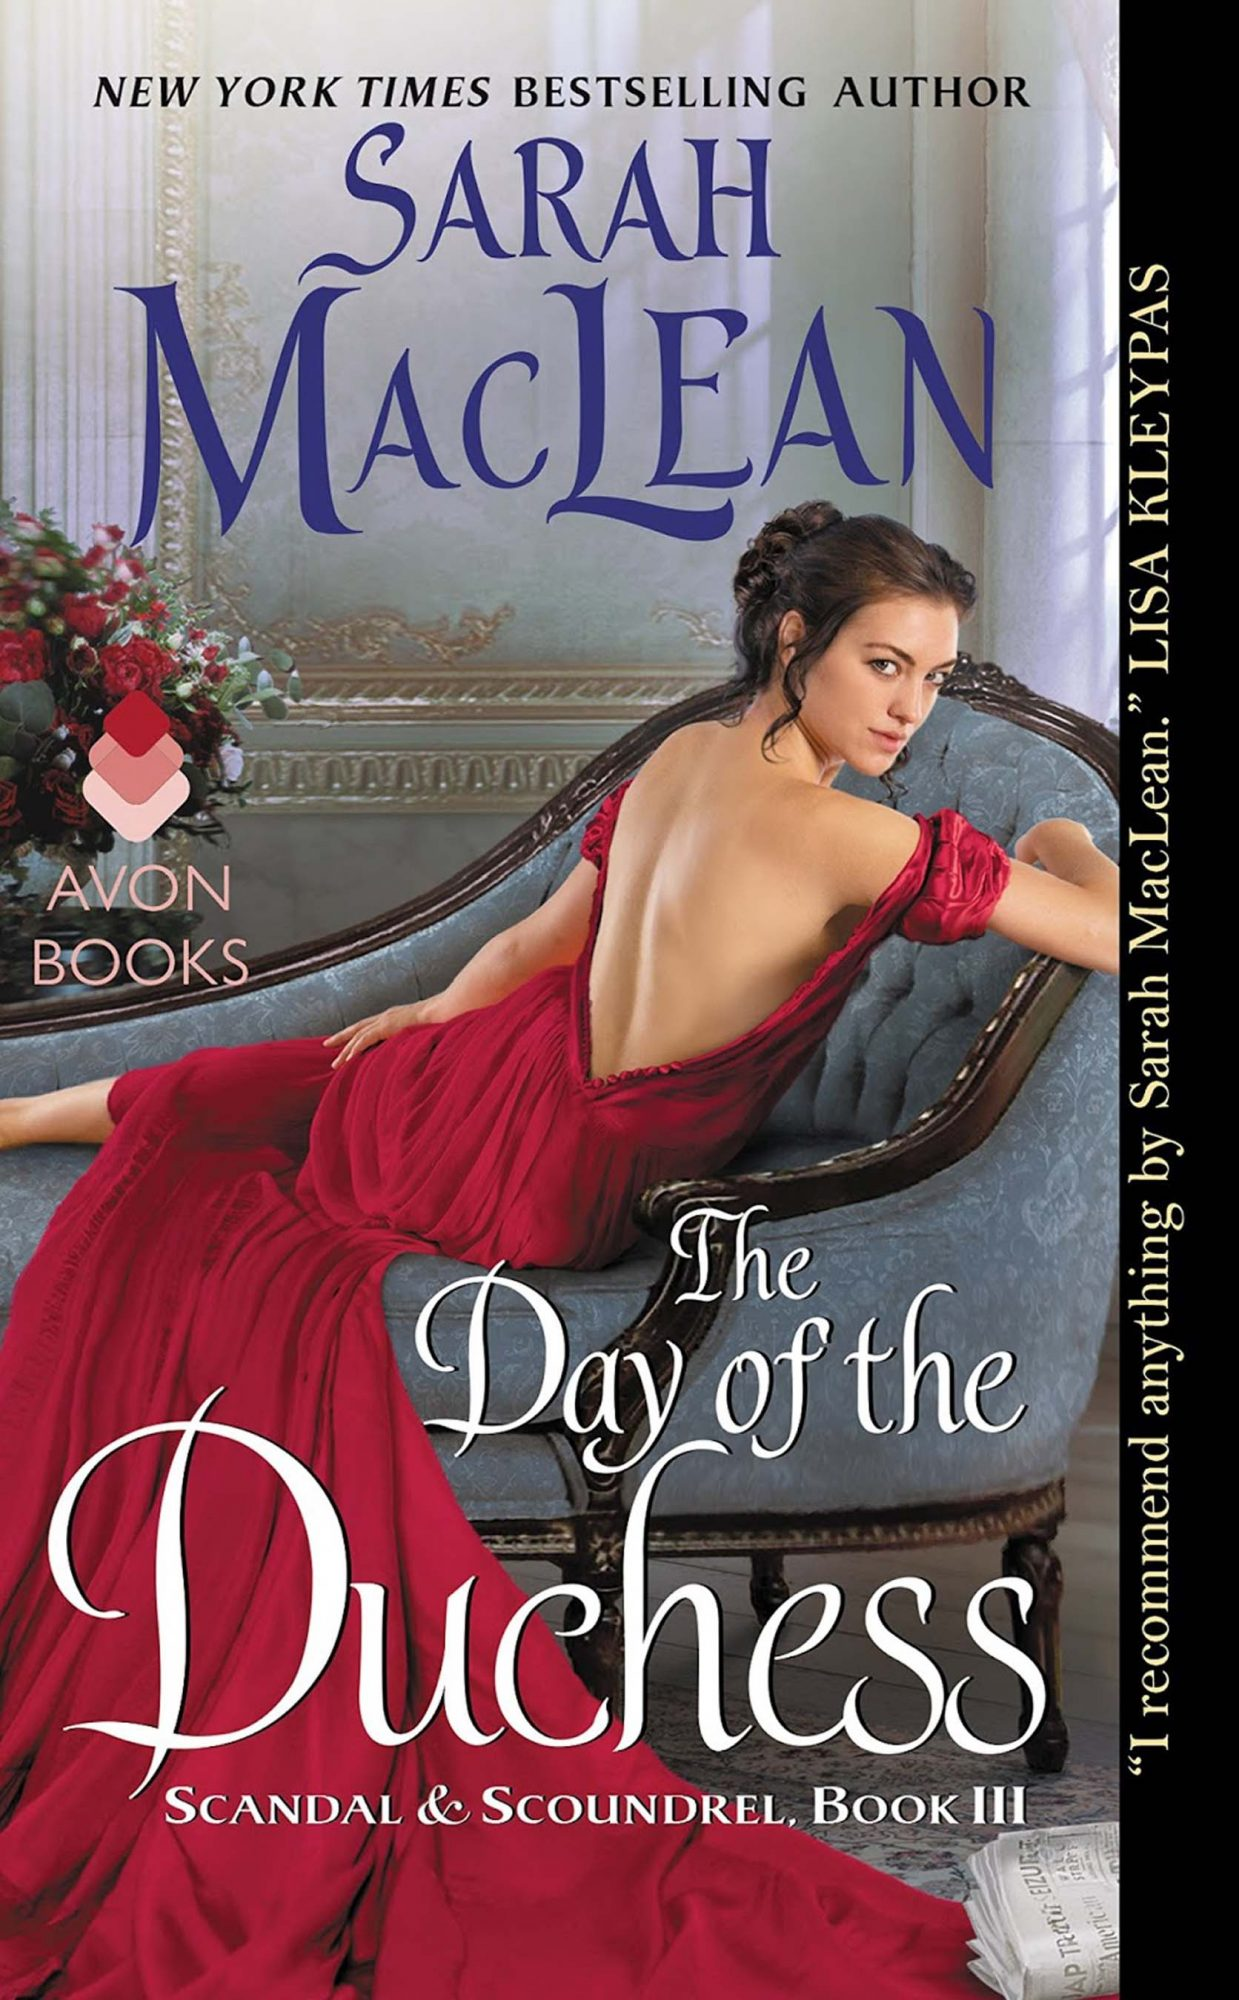 The Day of the Duchess,by Sarah MacLean